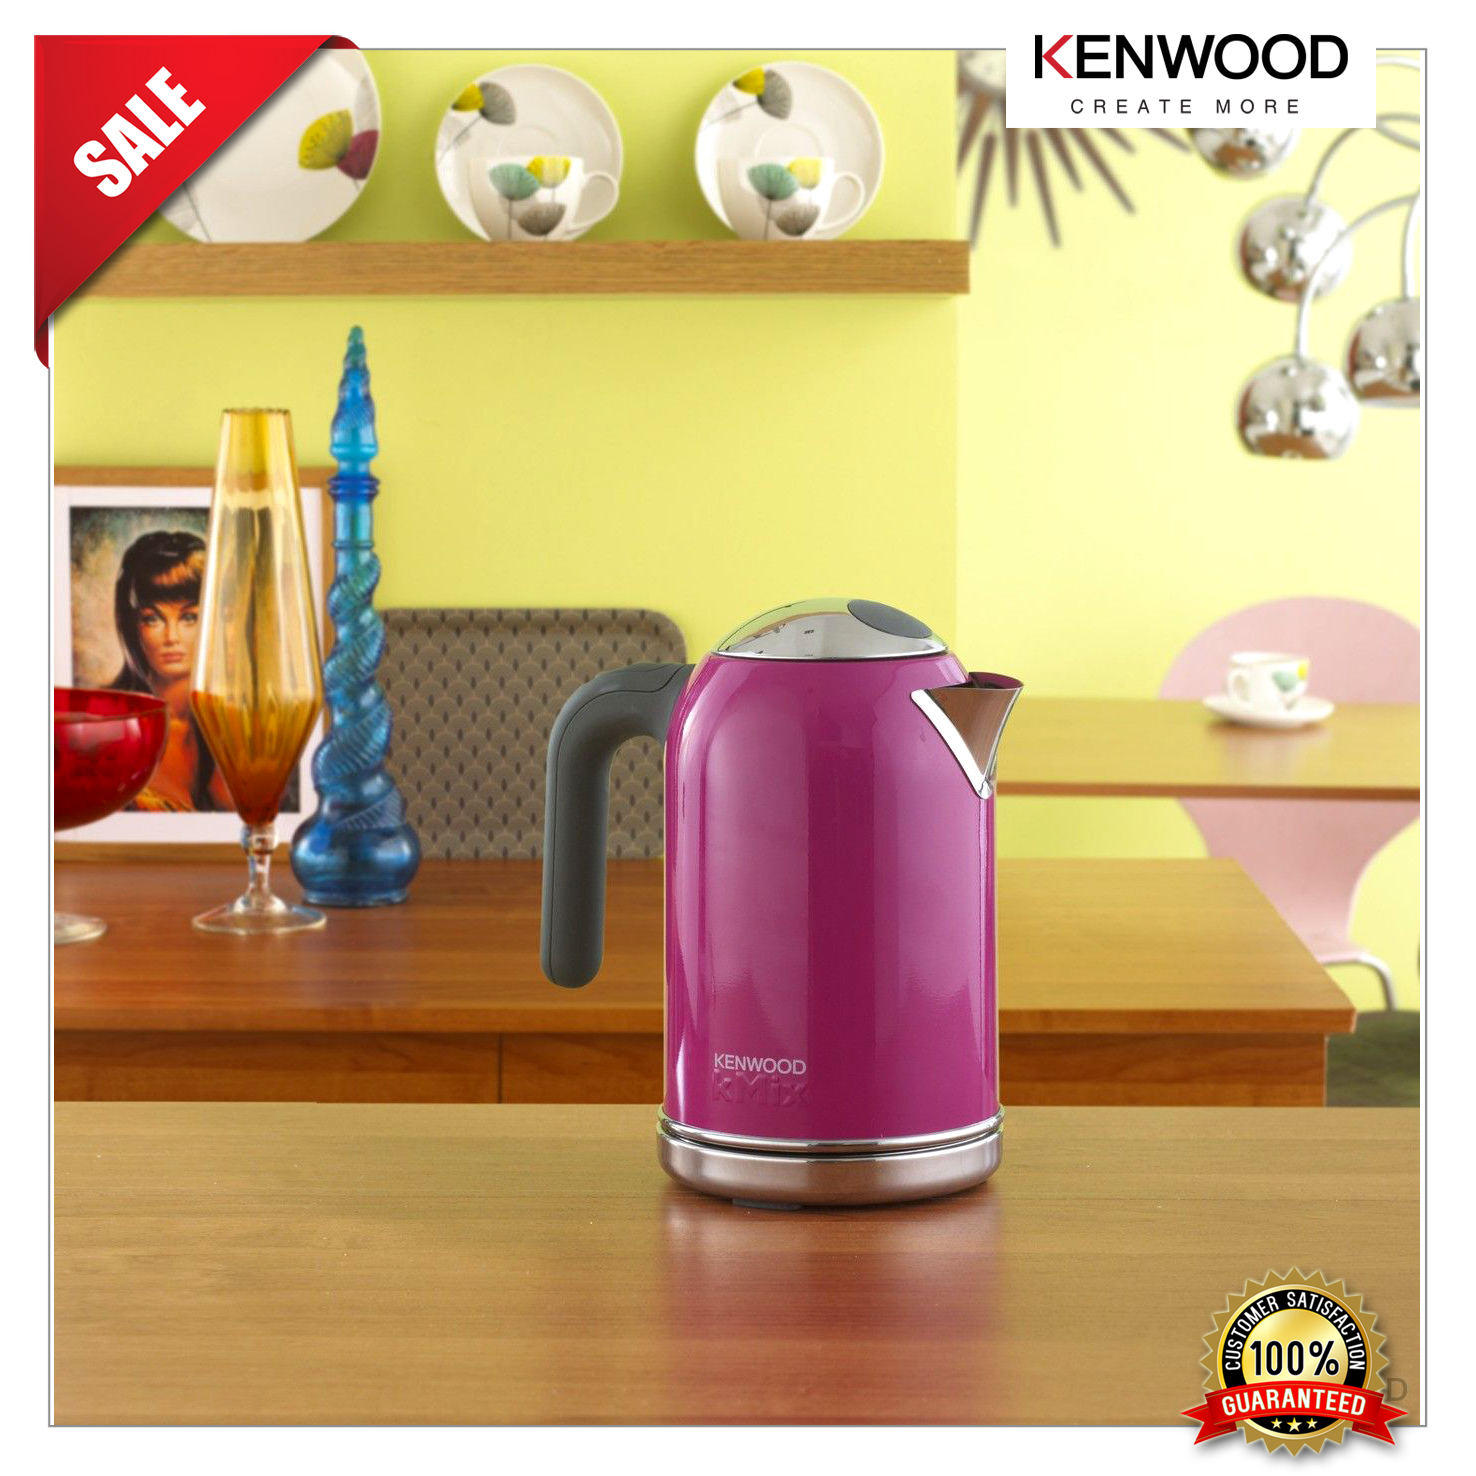 KENWOOD SJM029_KETTLEJUG – REVISI 3